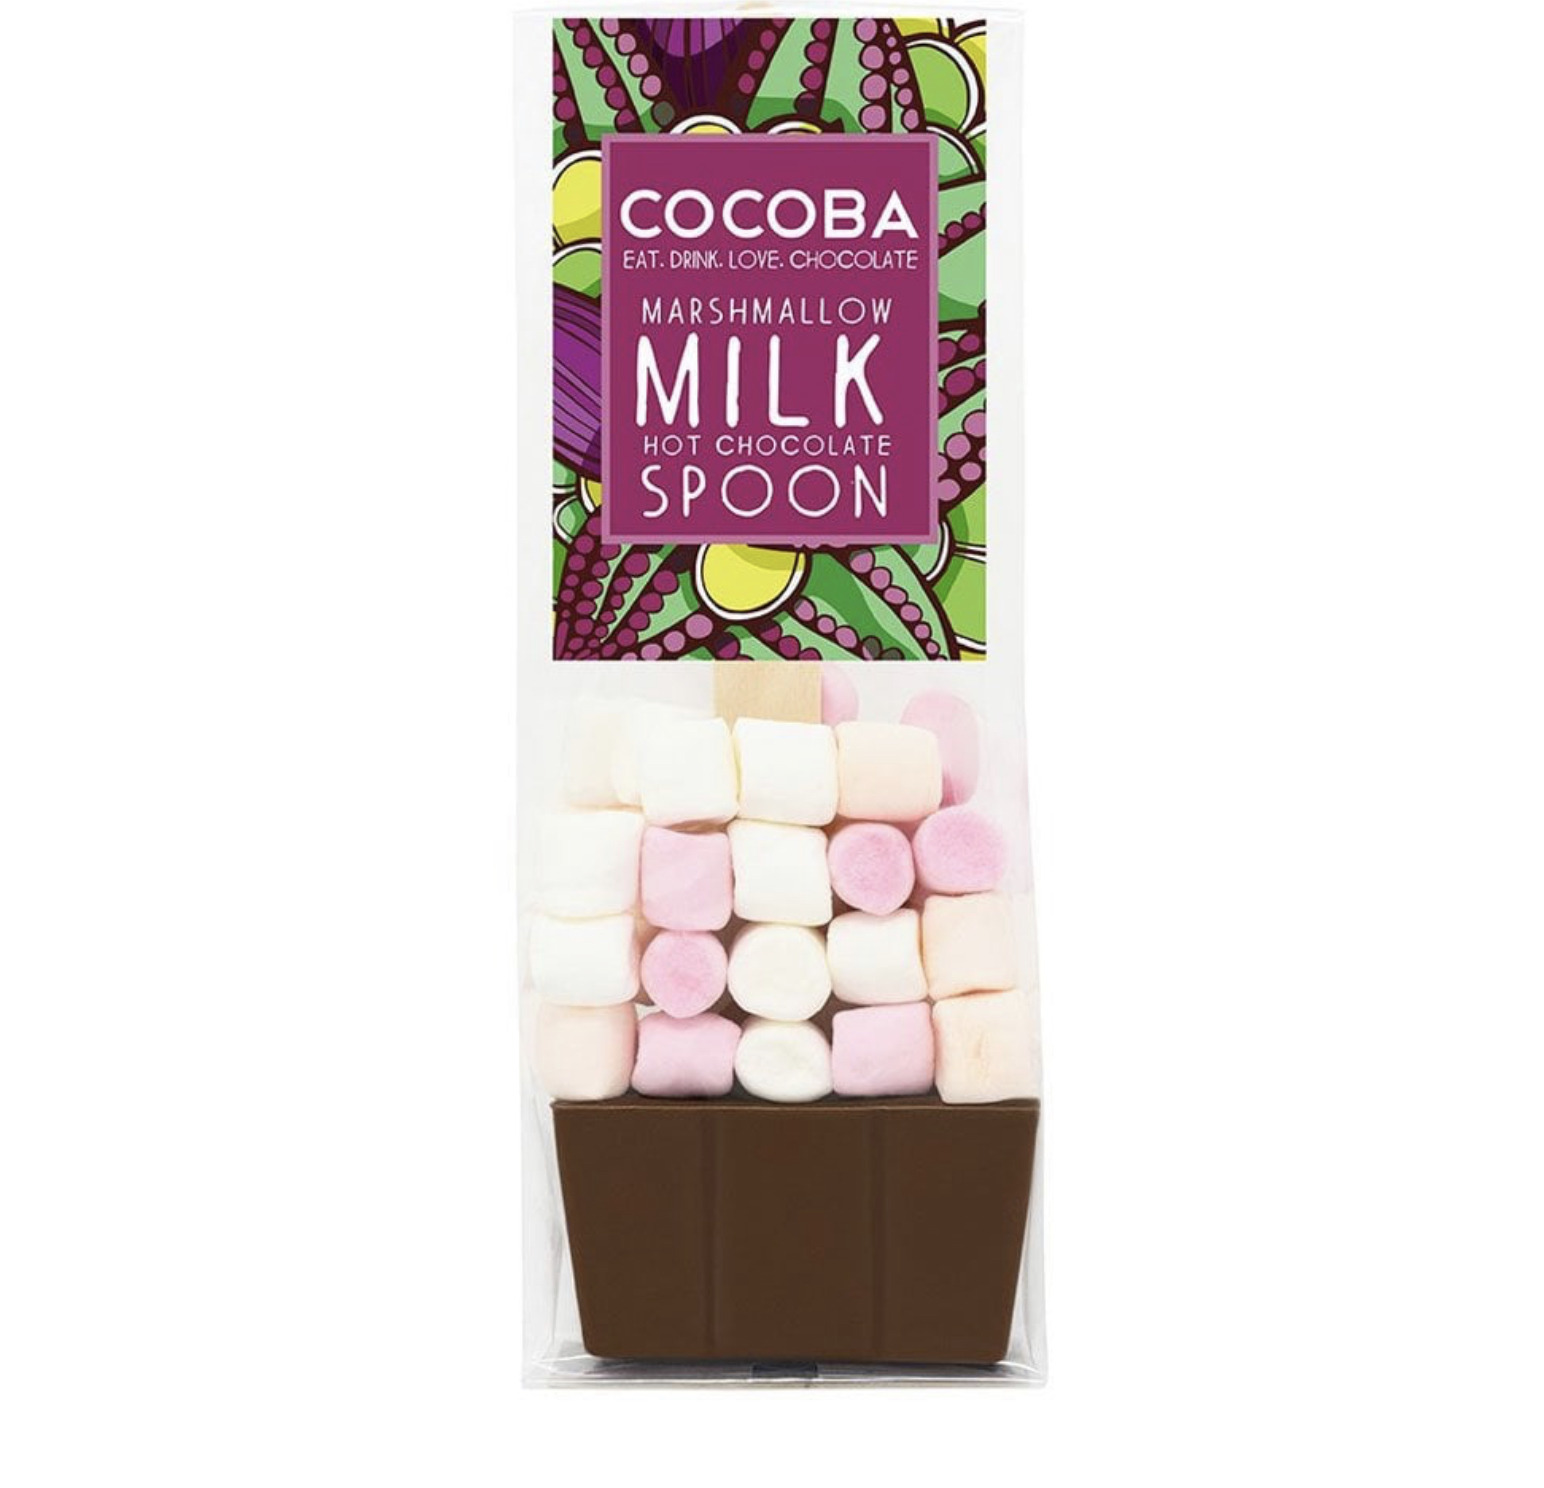 Cocoba Marshmallow Milk Hot Chocolate Spoon